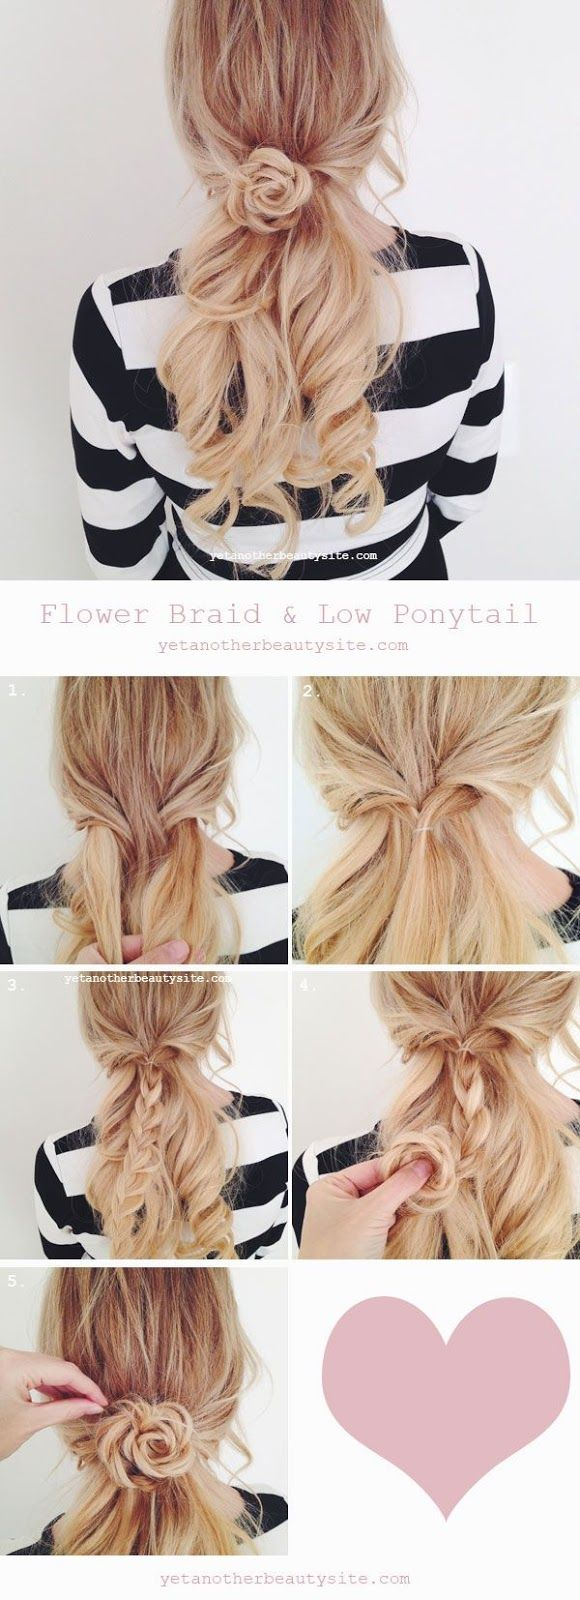 Hairstyles and Women Attire: LOVE the way that the hair is weaved in this style - perfect for the girl that does not want curls!